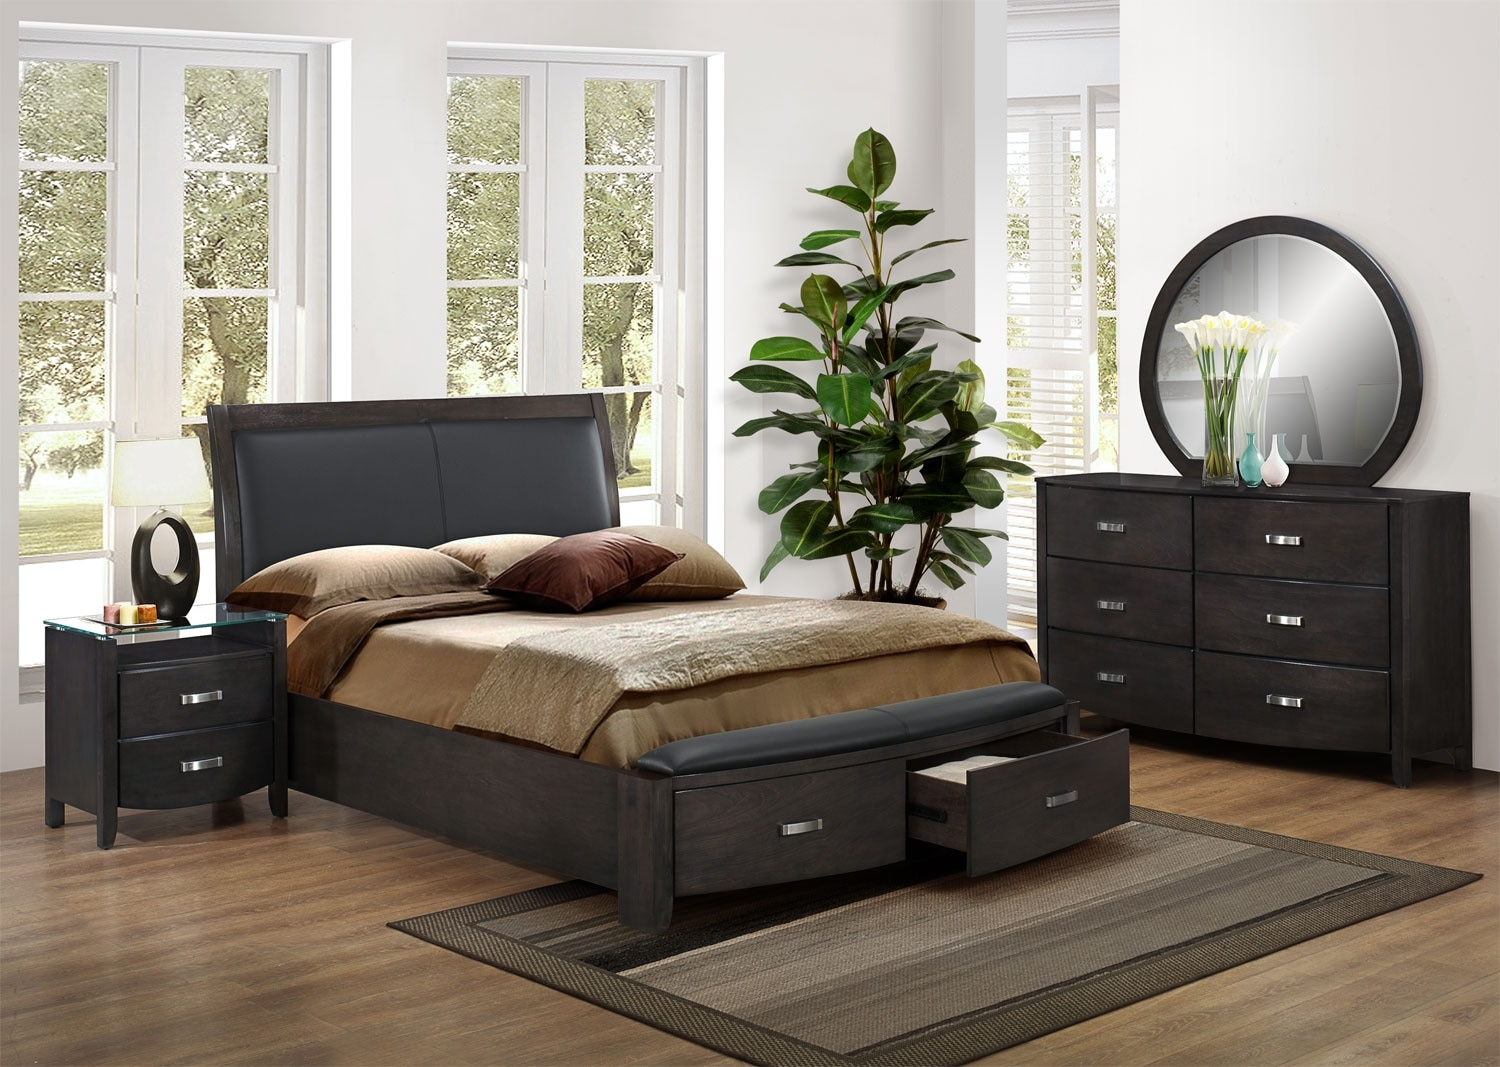 King Bedroom Furniture Cinema 5 Pc King Bedroom Package Charcoal Leons